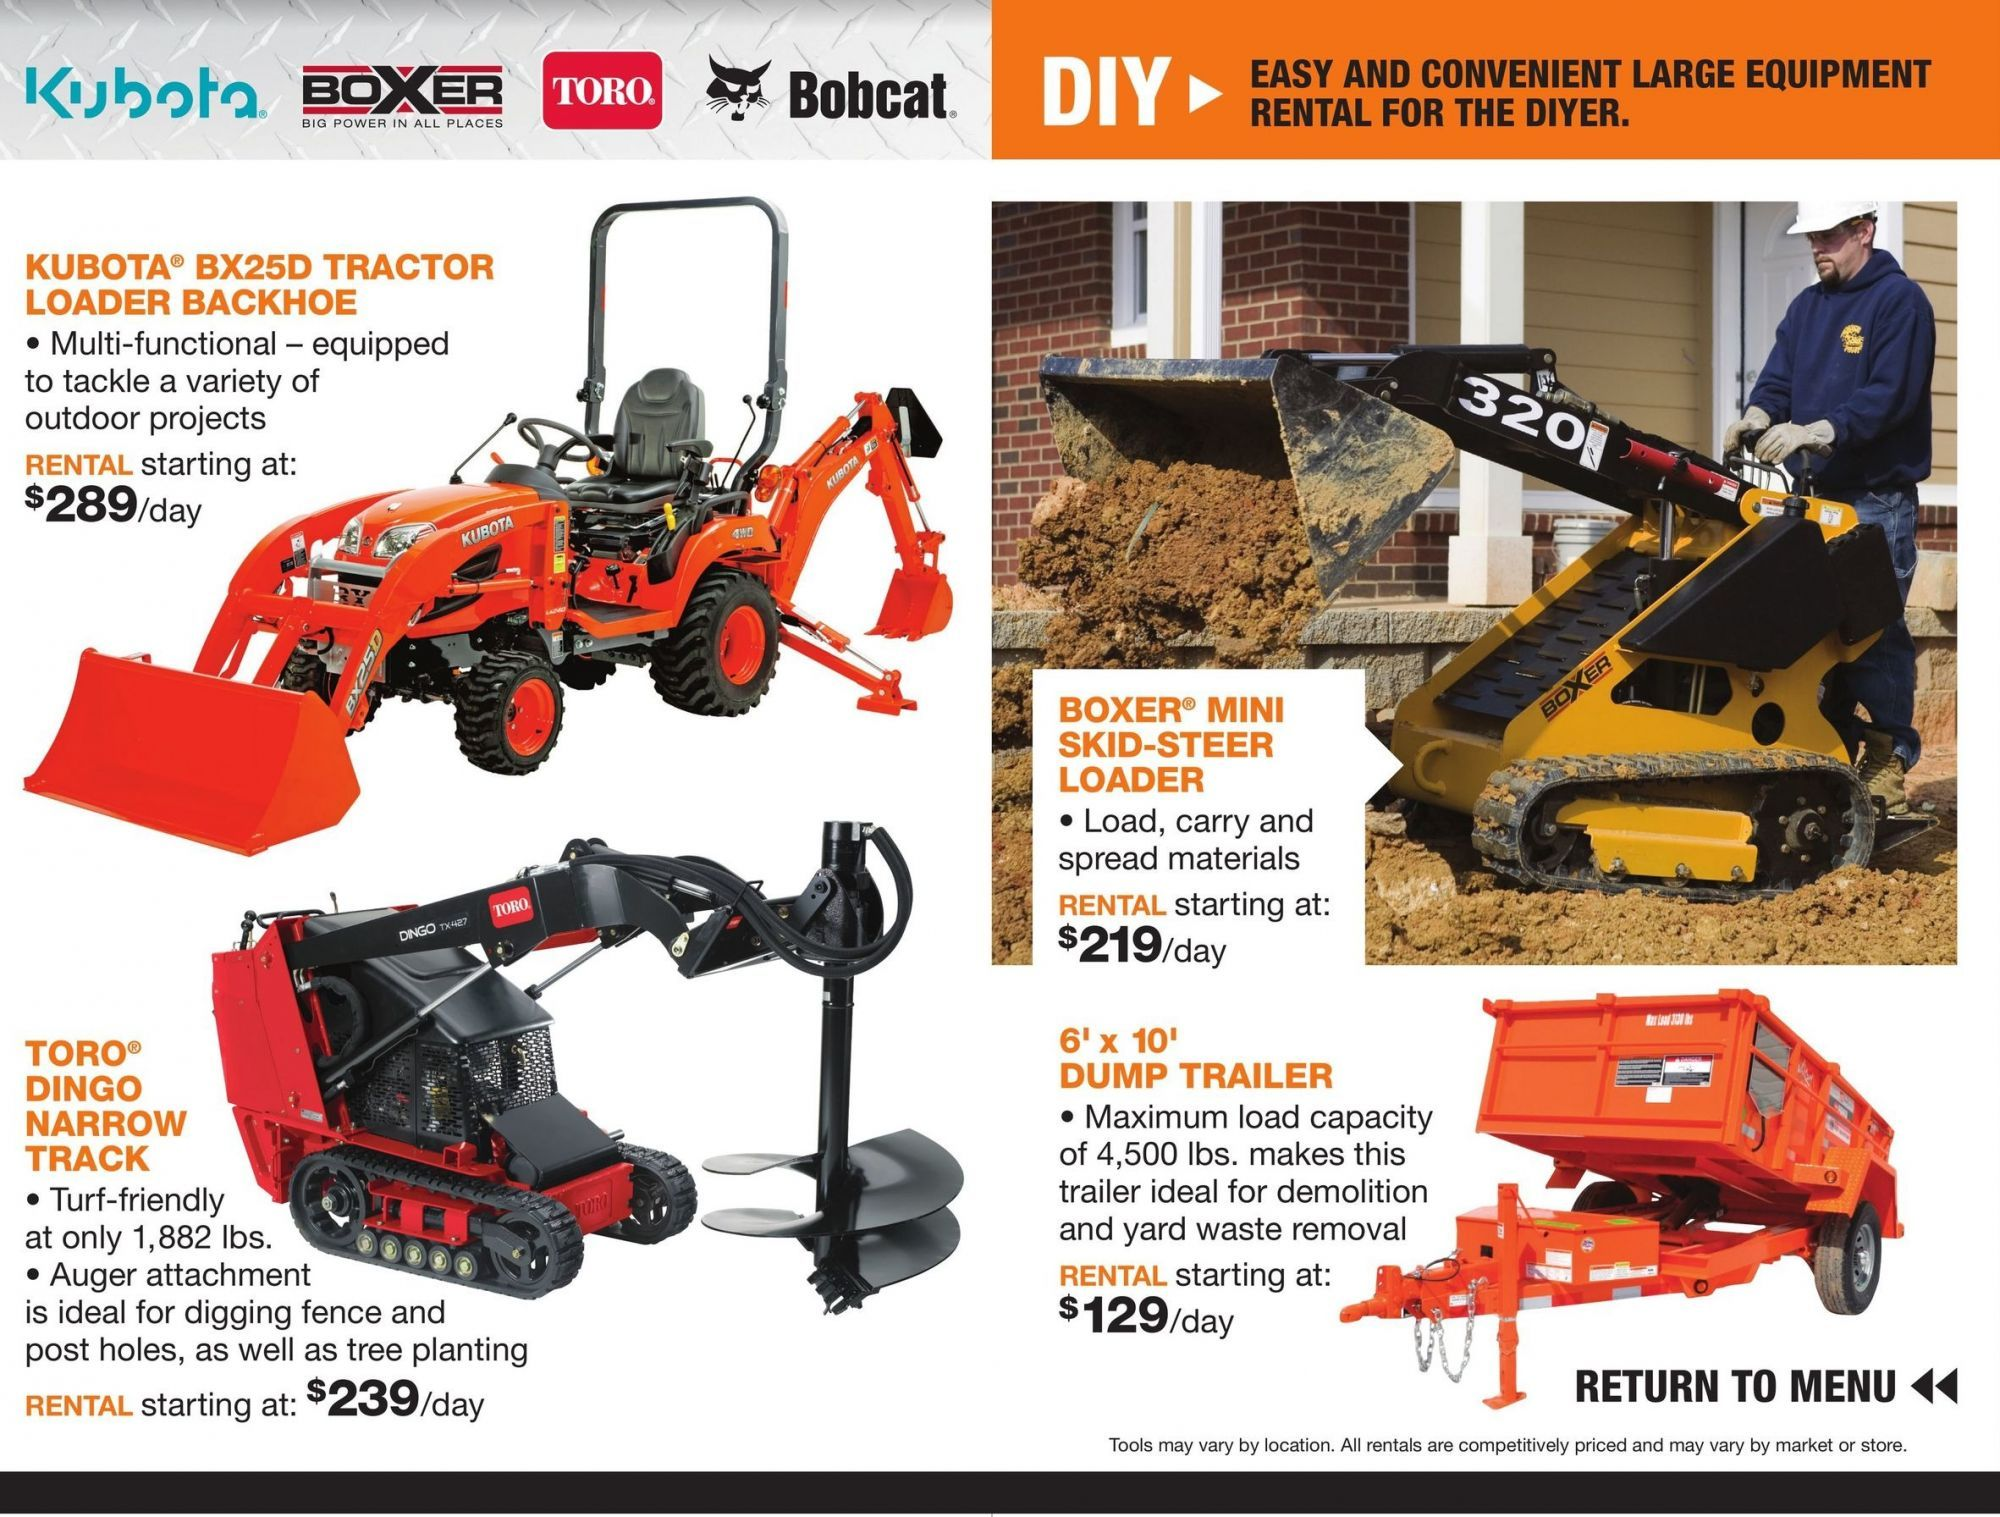 Flyer Home Depot Tool Rental 2018 Canada From Friday March 23 2018 To Monday December 31 2018 Home Depot Home Depot Store Flyer